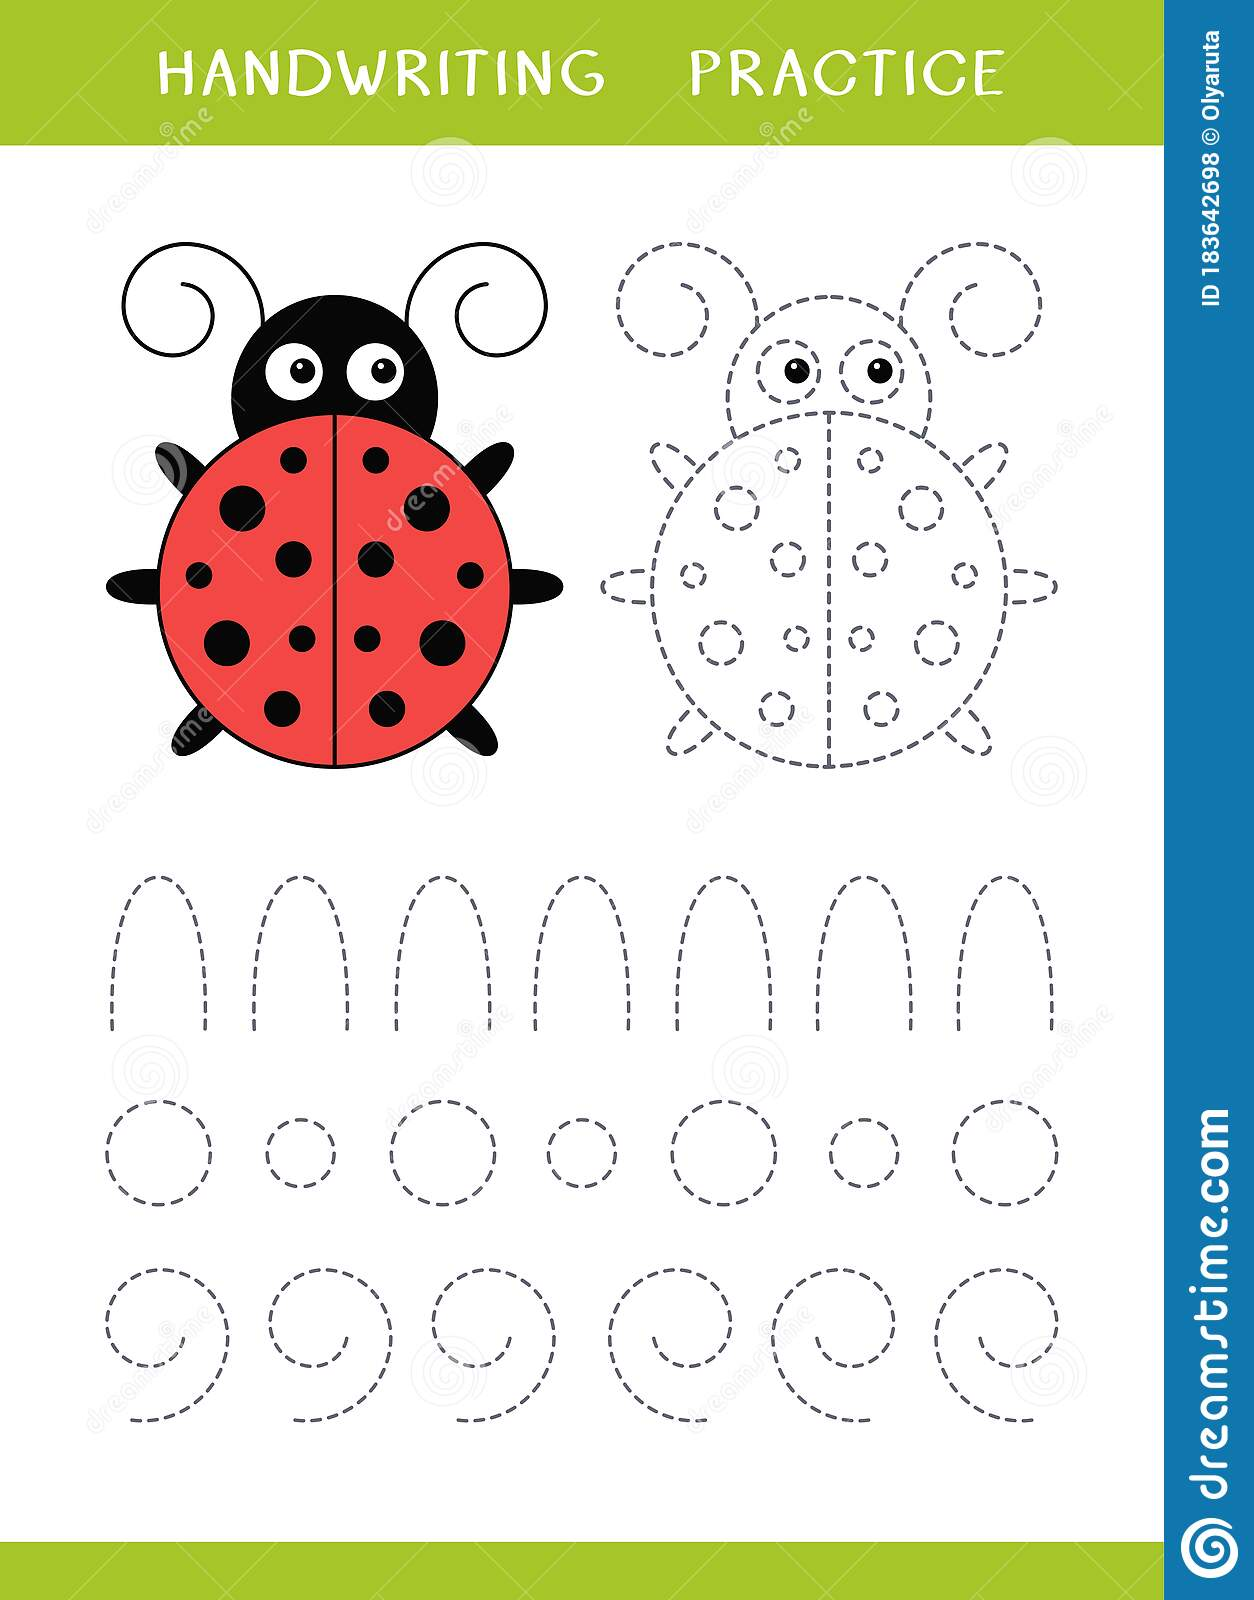 Handwriting Practice Sheet With Ladybird And Circle Shapes